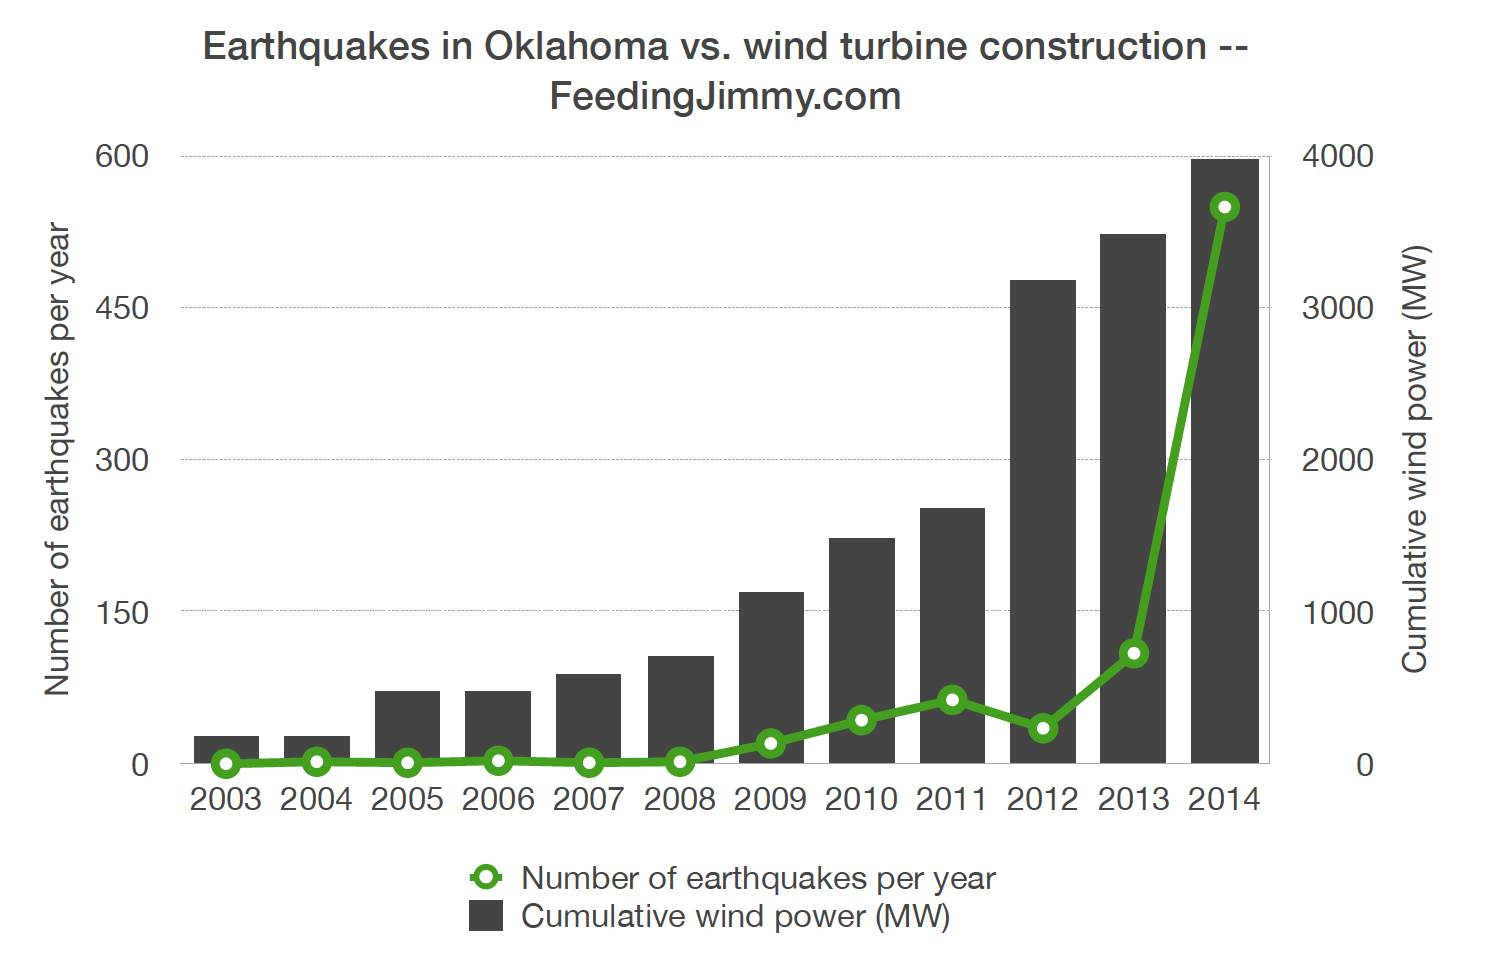 Wind turbine earthquakes